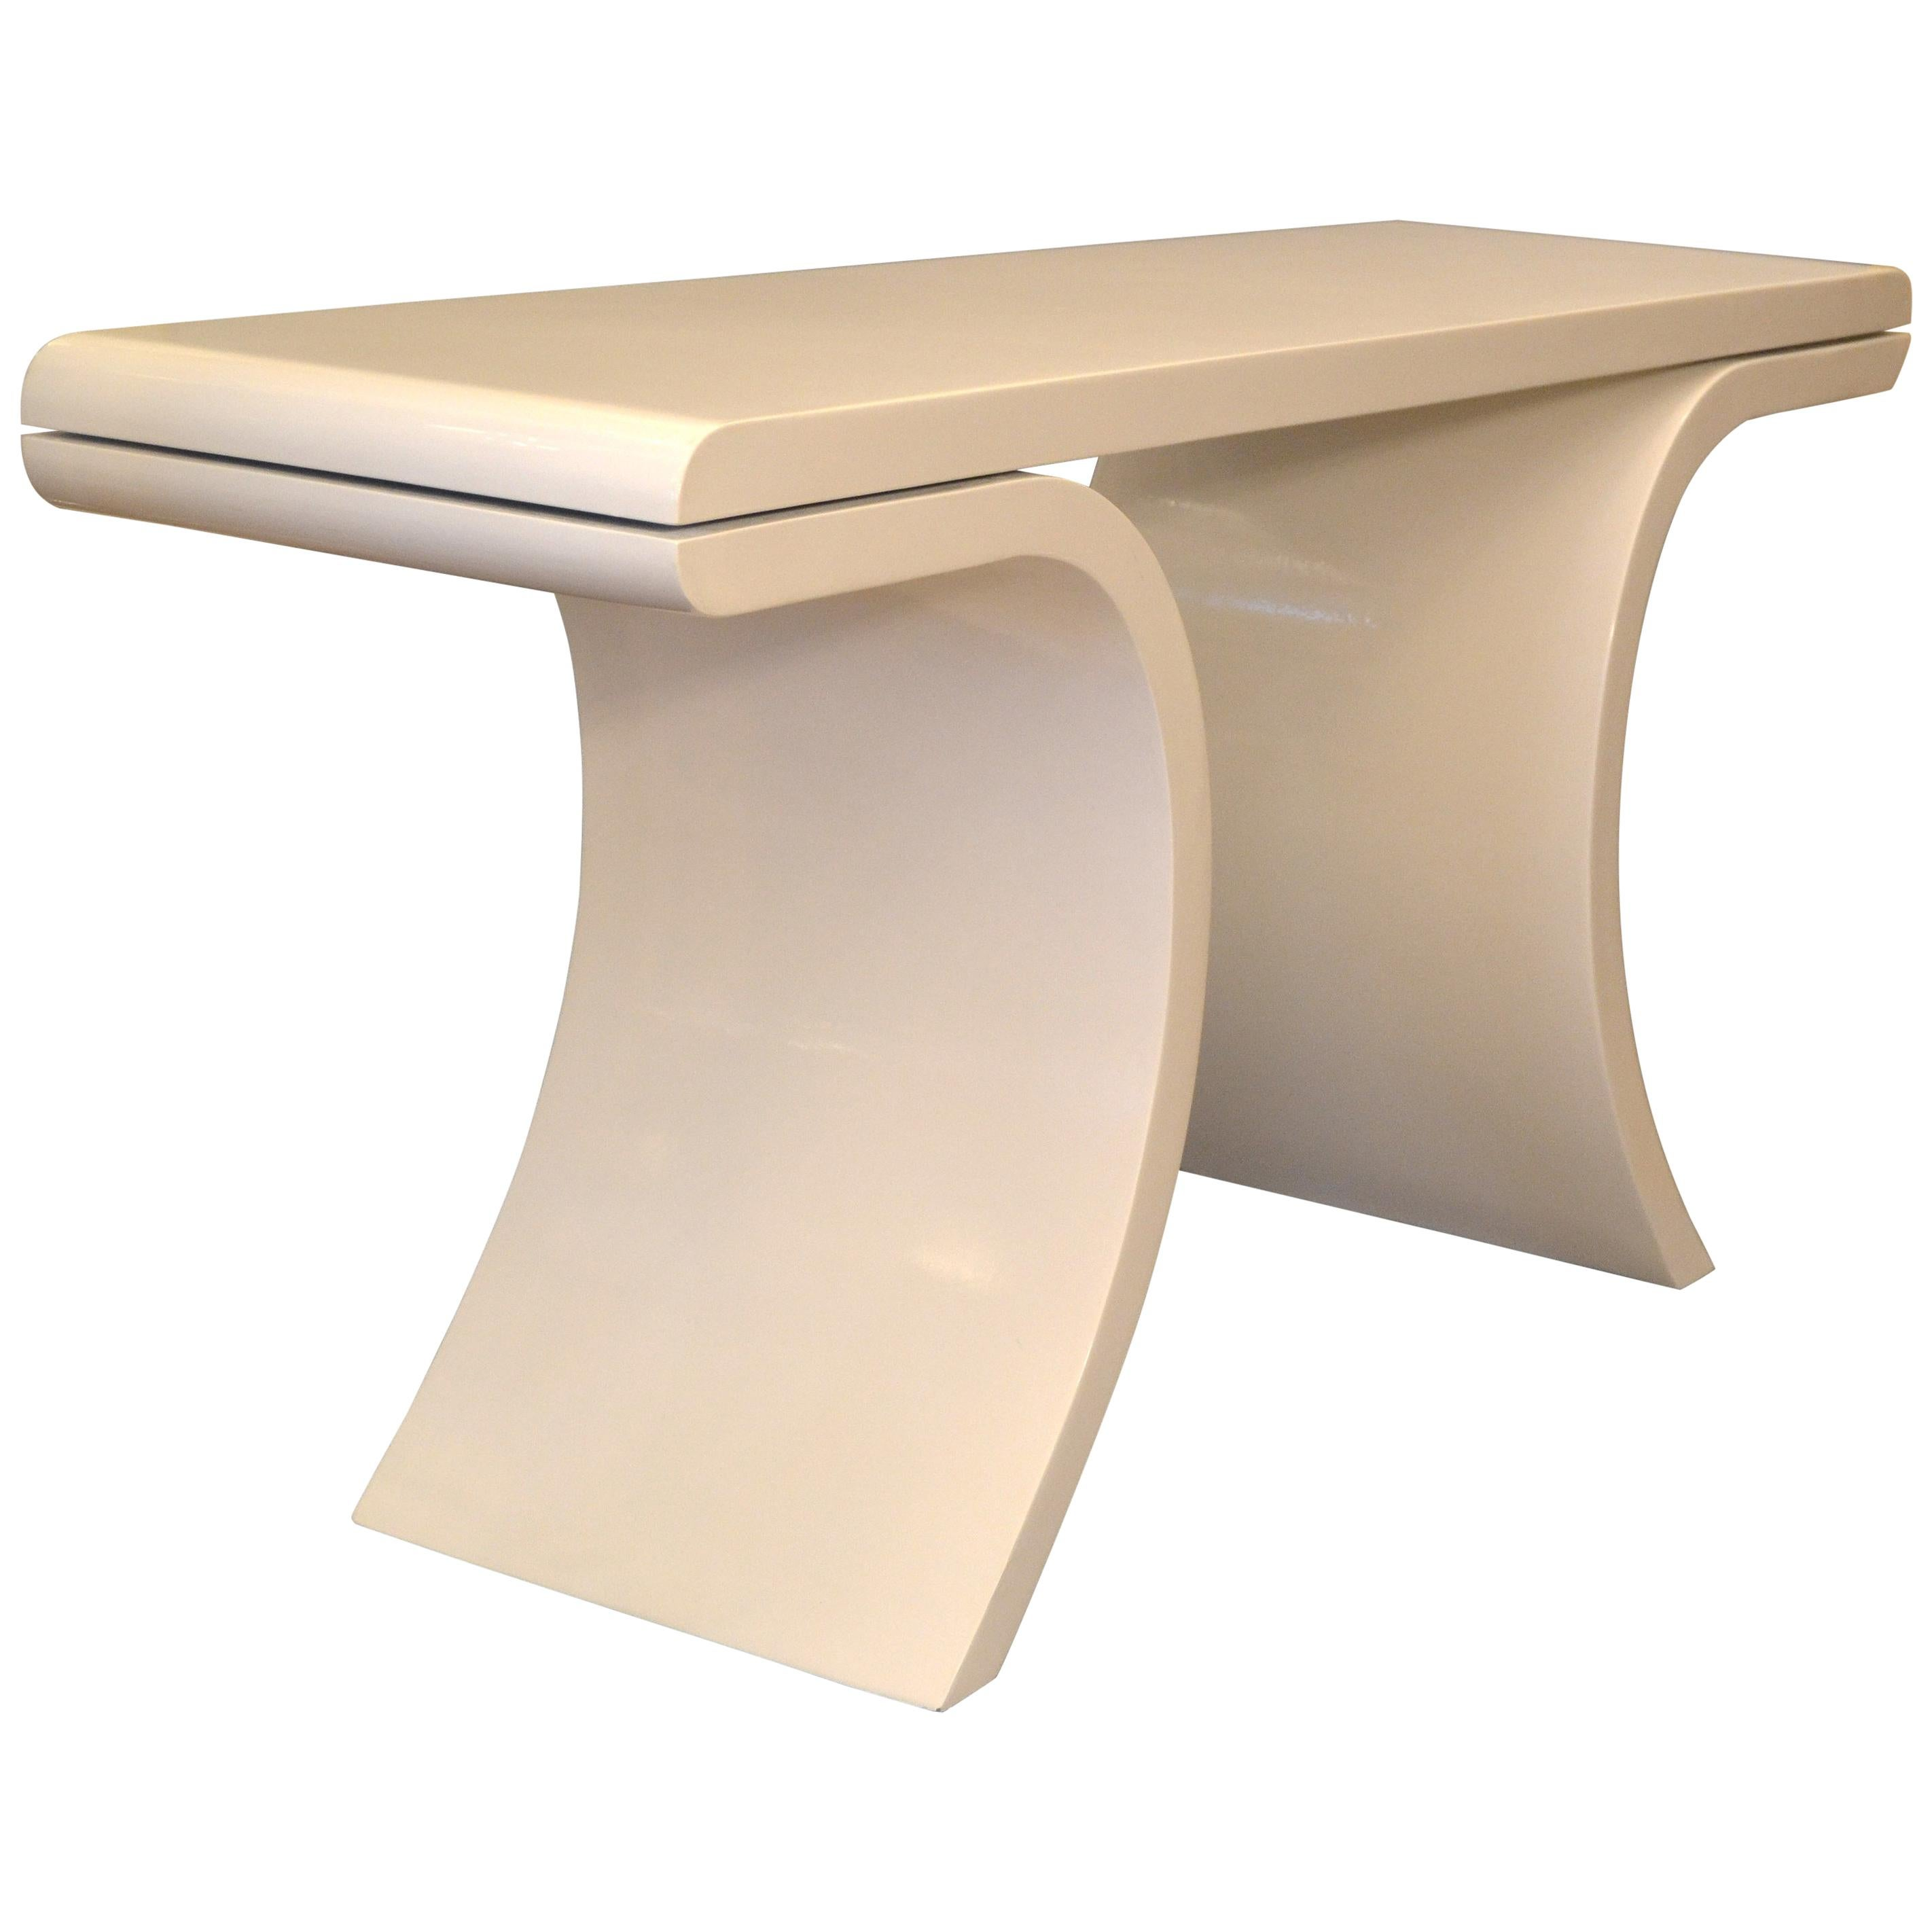 Hollywood Regency White Lacquer Console Table With Curved Legs